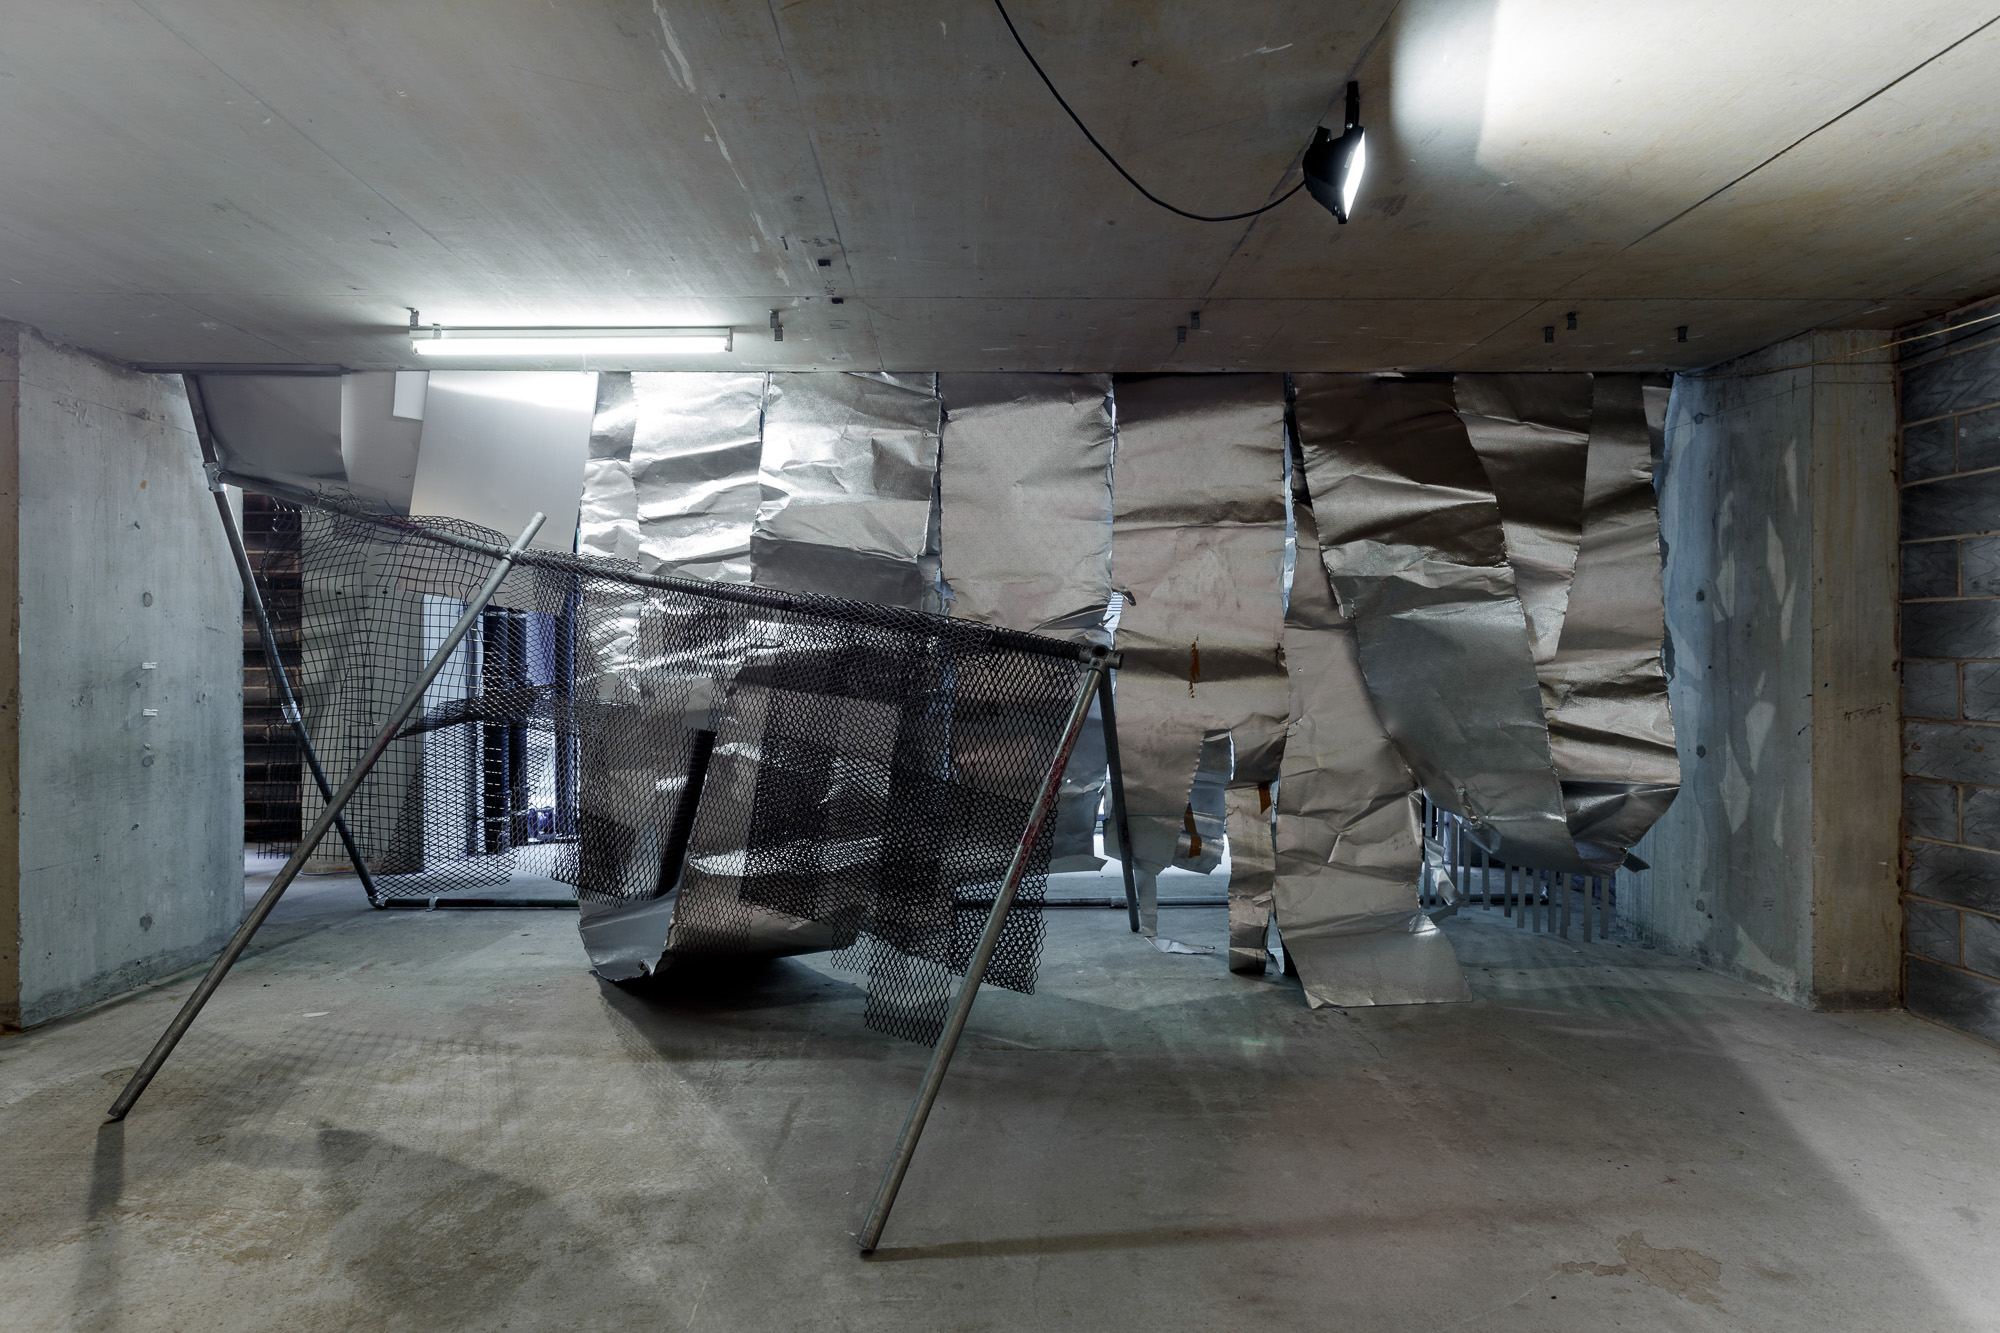 Custom Folds. Mild steel and aluminium. Site responsive installation at The Great Medical Disaster. 5m x 6m x 4m Approx. 2017. Image credits: Jules Lister